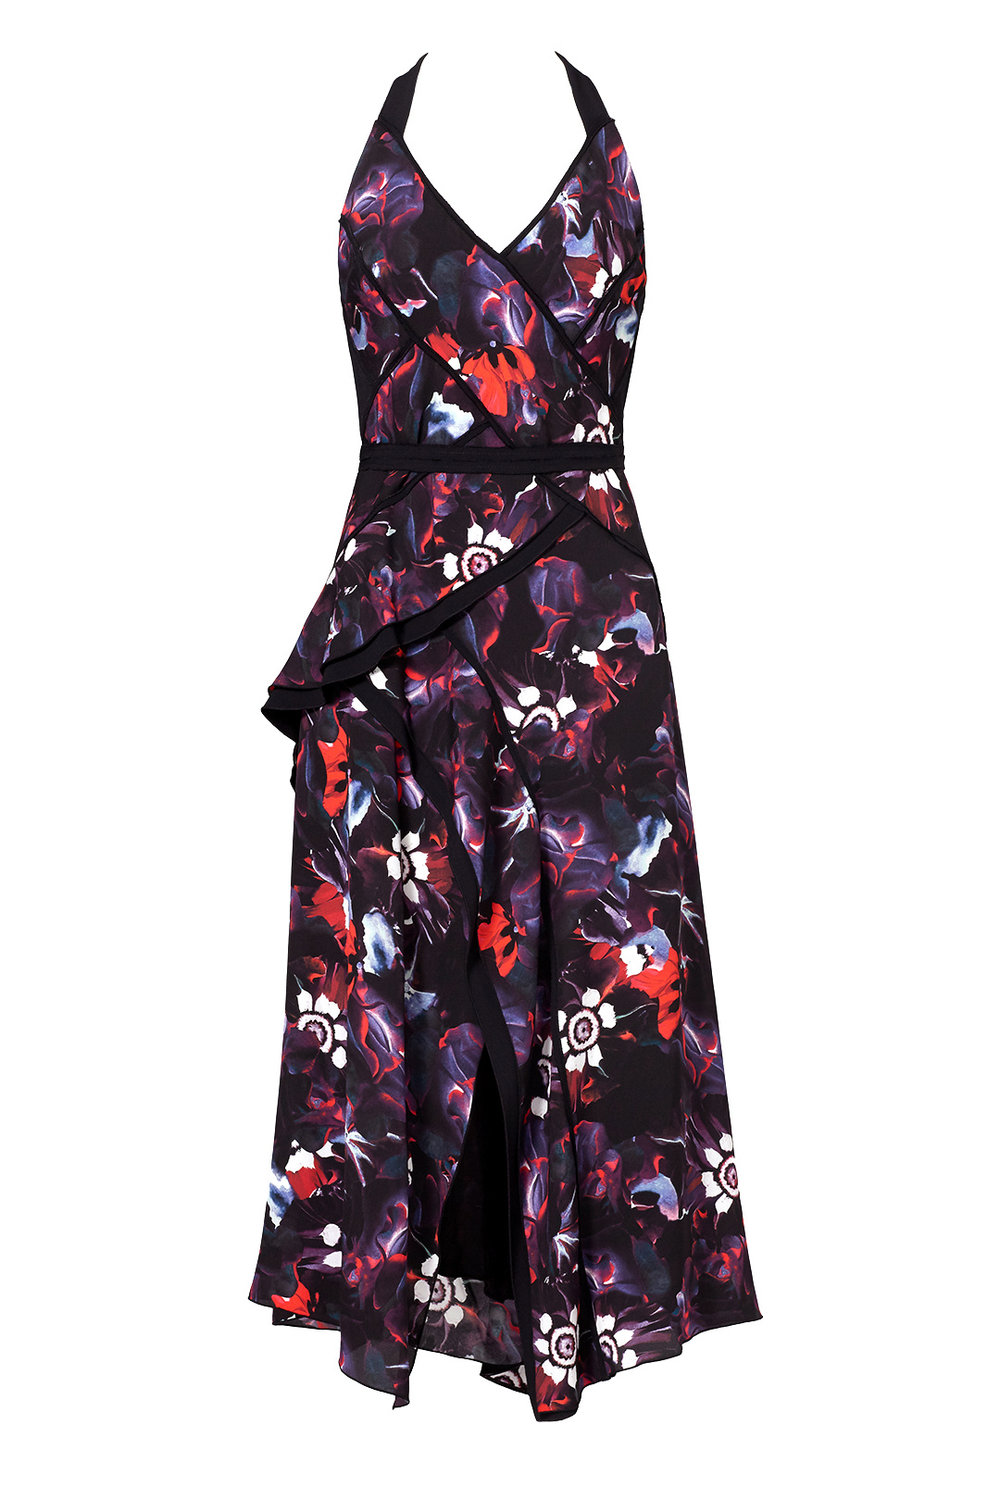 Floral Bodice Overlap Dress Proenza Schouler Pansy Long Sleeve Dress from Rent the Runway | Top US fashion blog, The Borrowed Babes features the Best Spring Floral Dresses